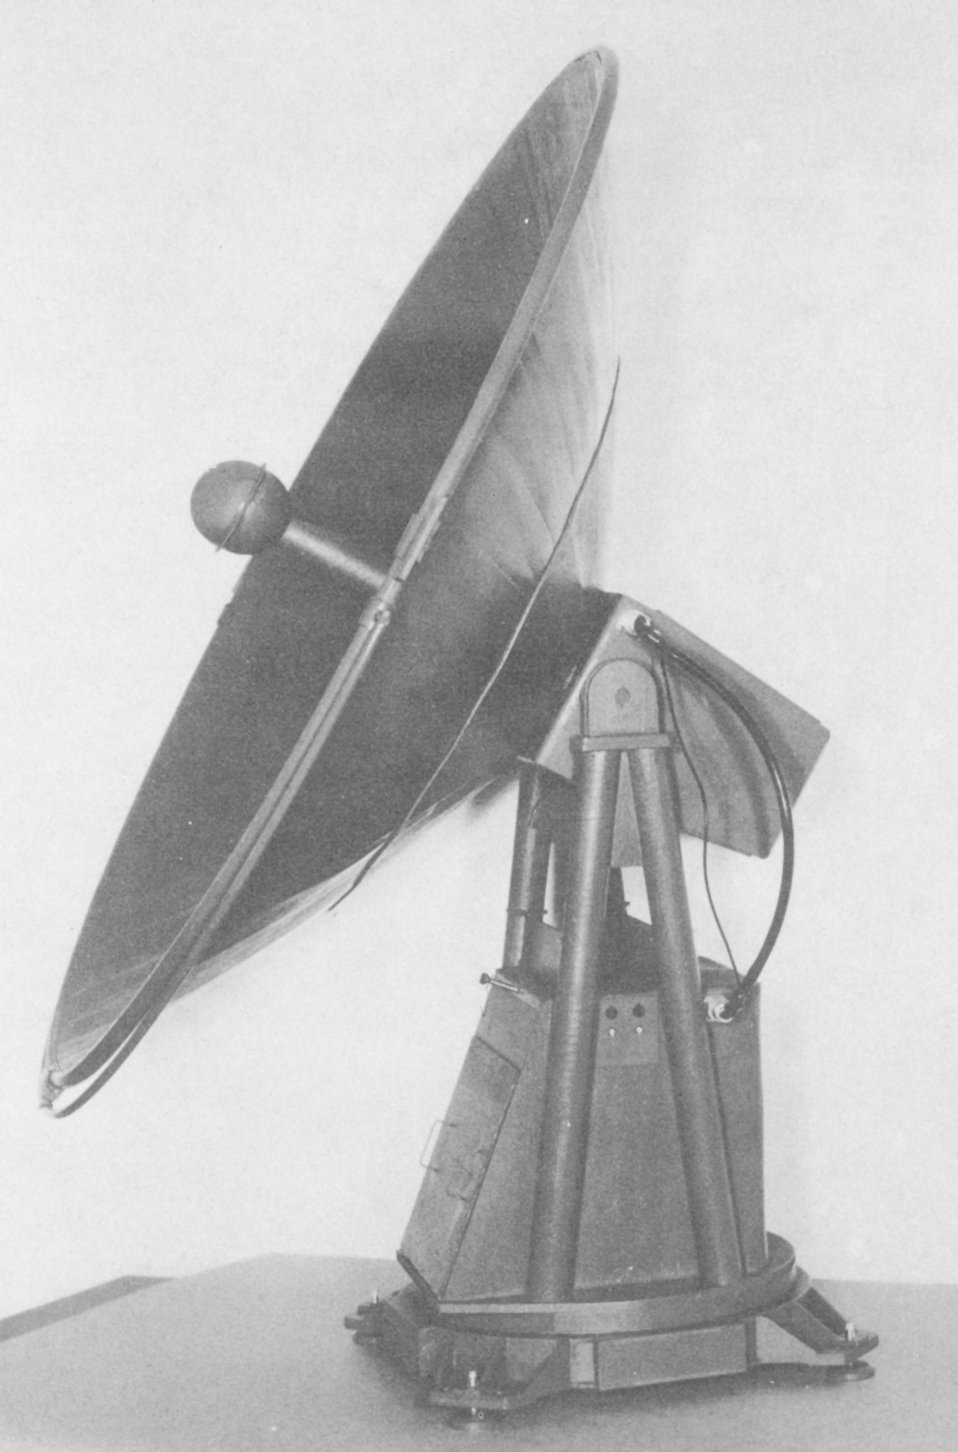 Scale model of new radiotheodolites meant to replace the SCR-658 bed-spring type for tracking balloon carried radiosondes.